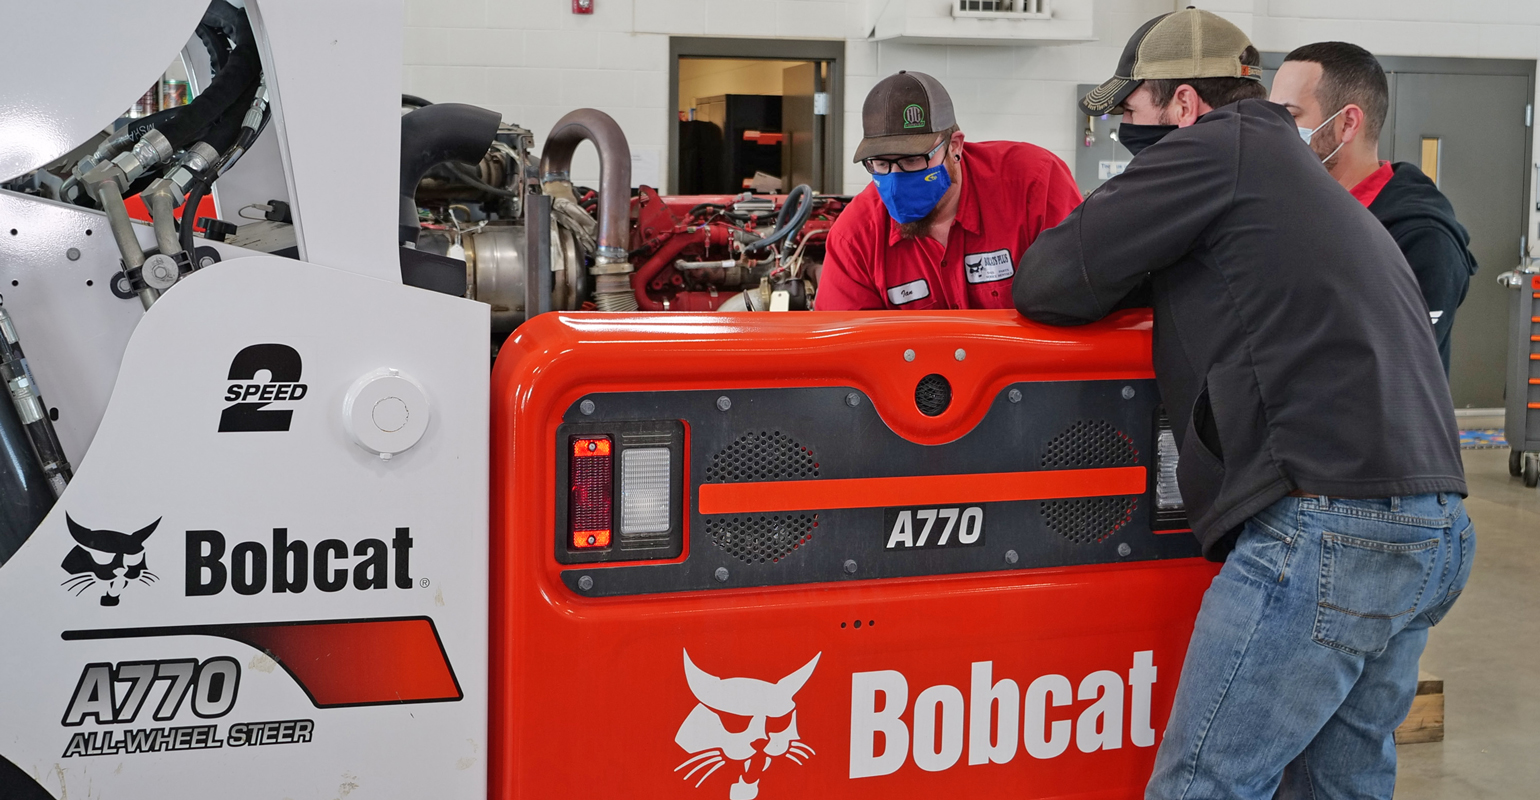 diesel equipment technology students checking out Bobcat equipment at Minnesota State Community and Technical College